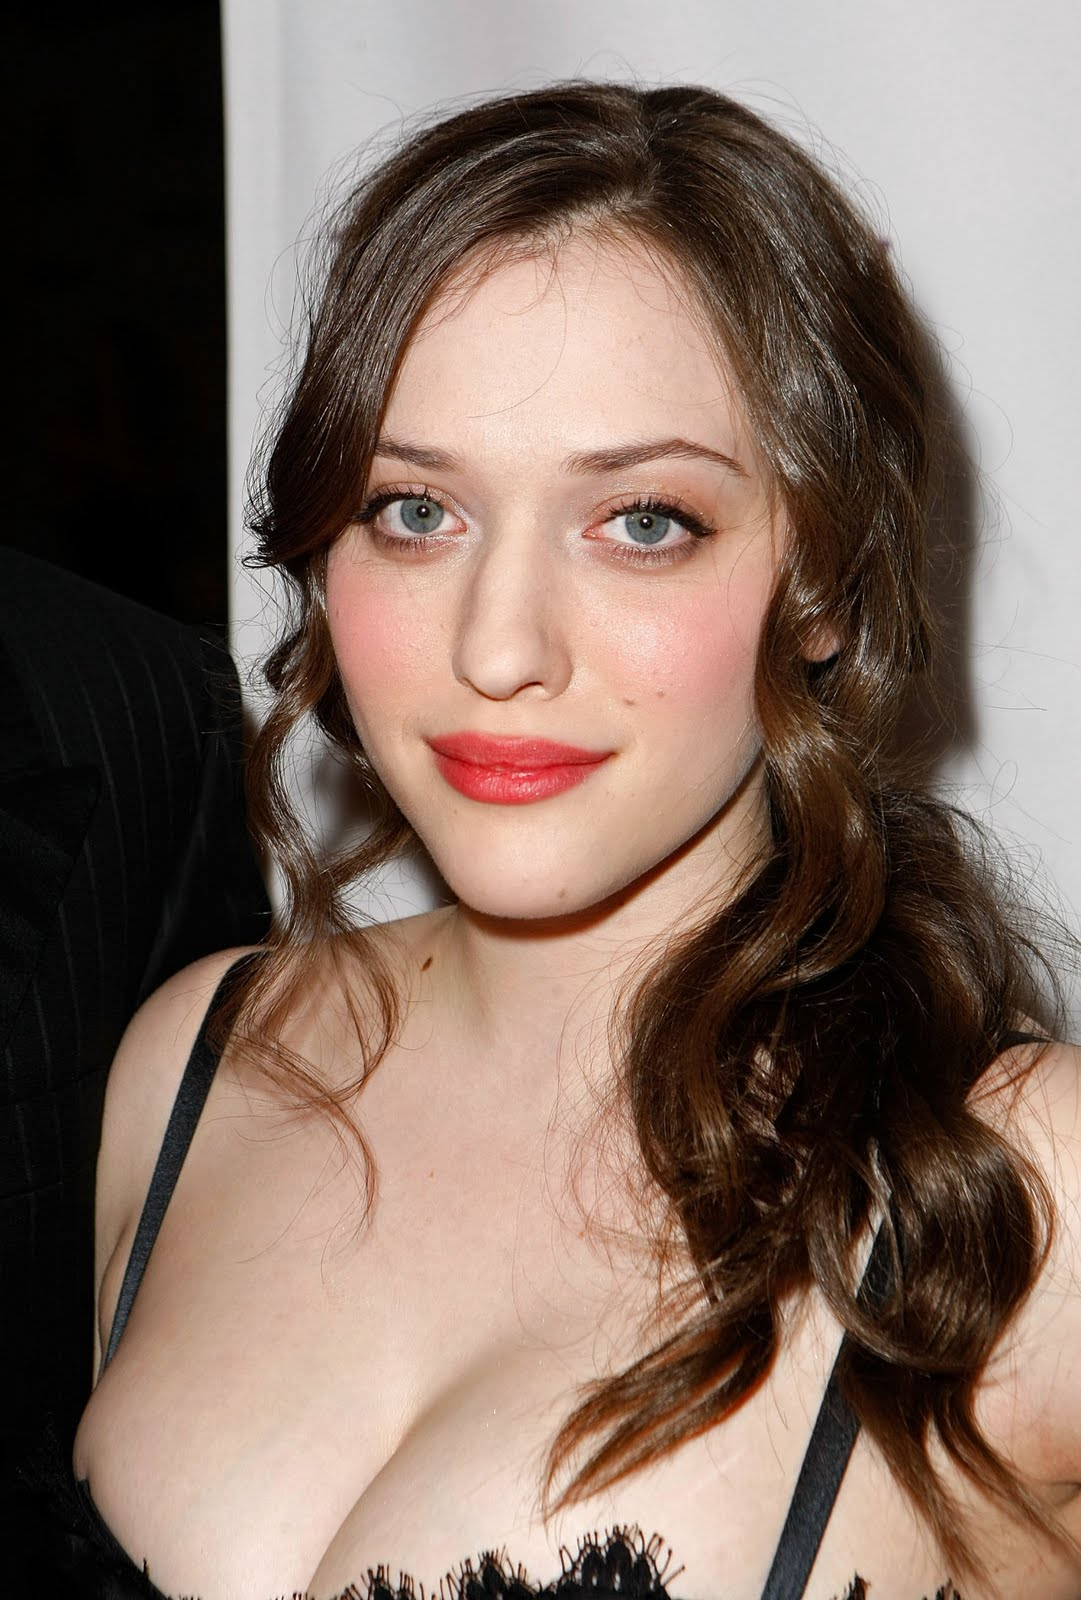 Kat Dennings 1146660 (Lelita Casta,Blanchard Ryan,Joan Severance and more)